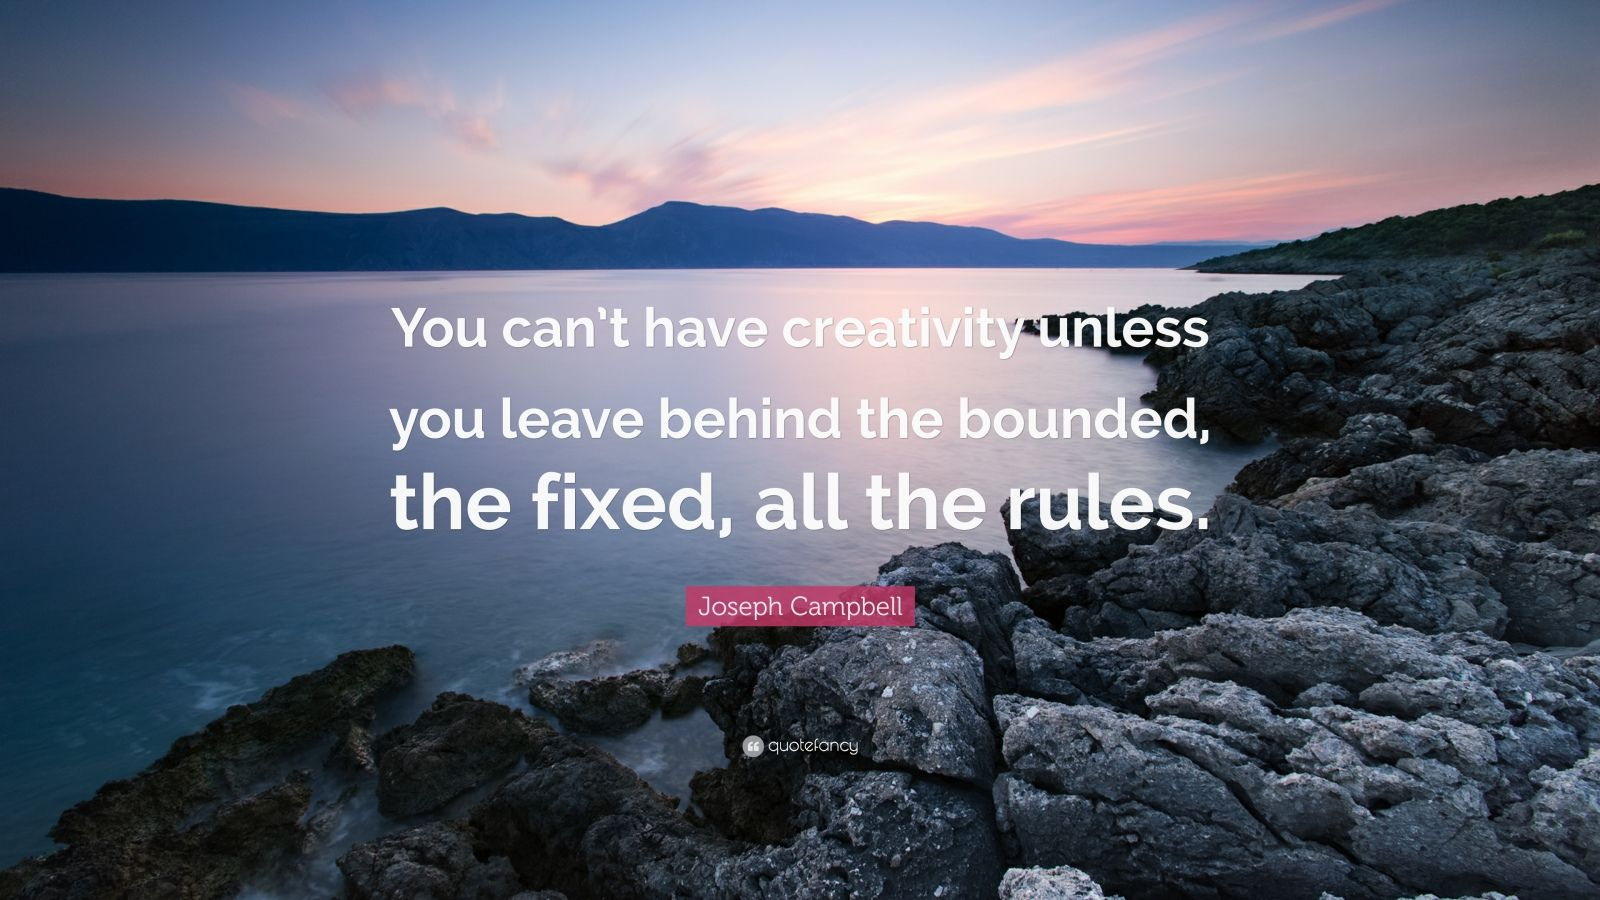 """Joseph Campbell Quote: """"You can't have creativity unless you leave behind the bounded, the fixed, all the rules."""""""